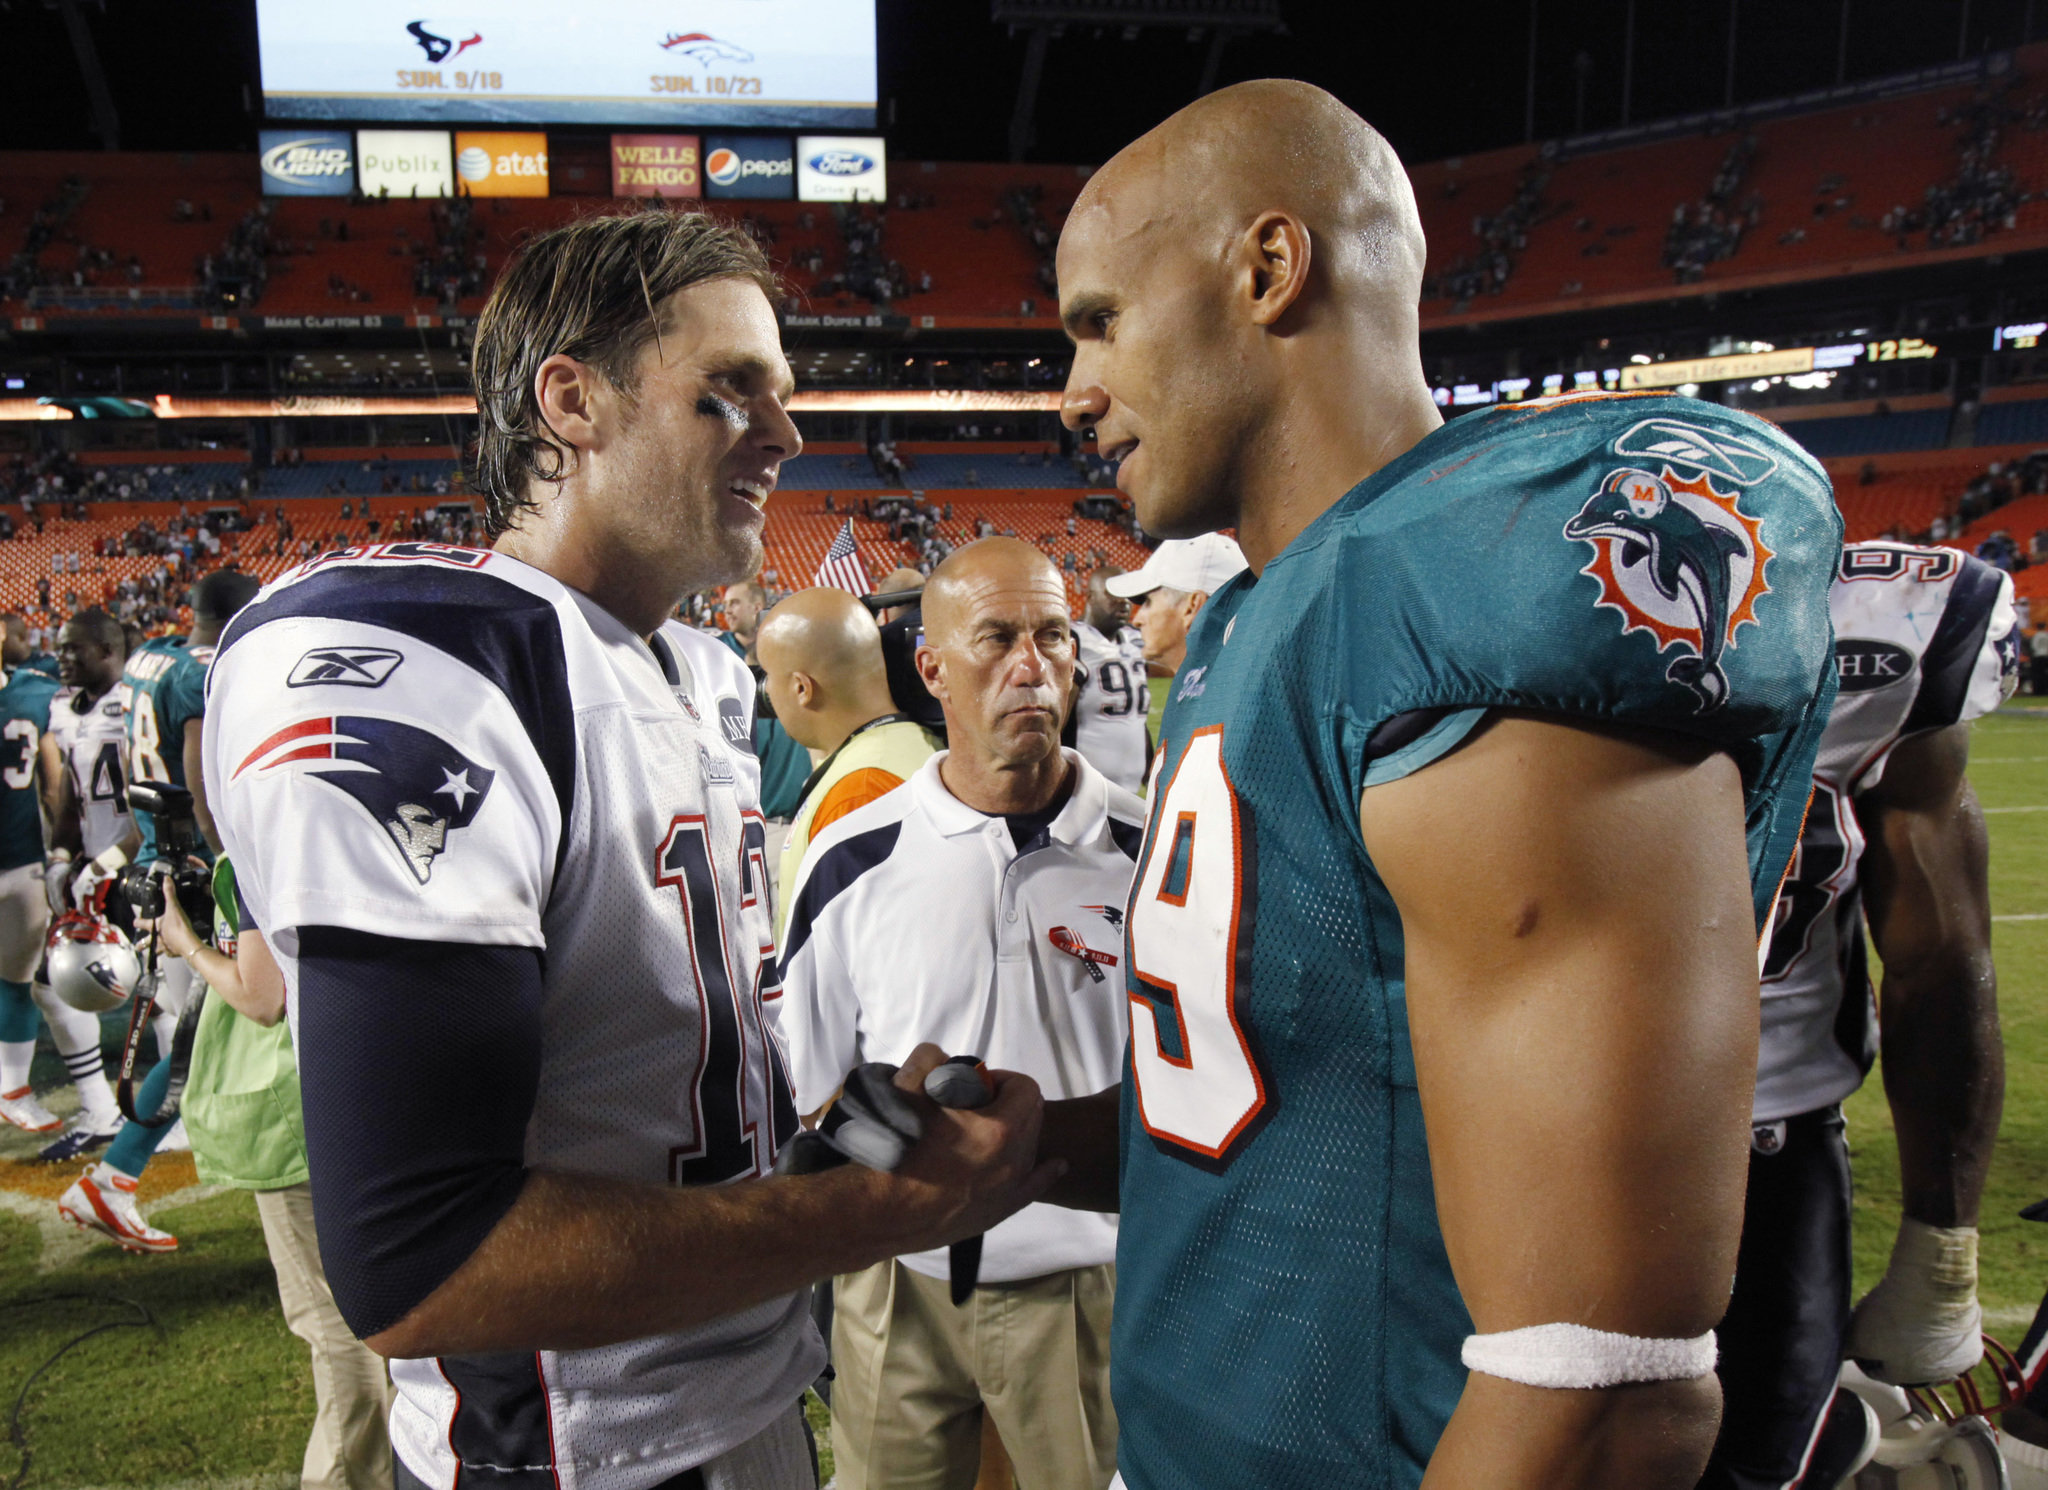 Www Tom Taylor De Tom Brady Floored Longtime Patriots Rival Jason Taylor With